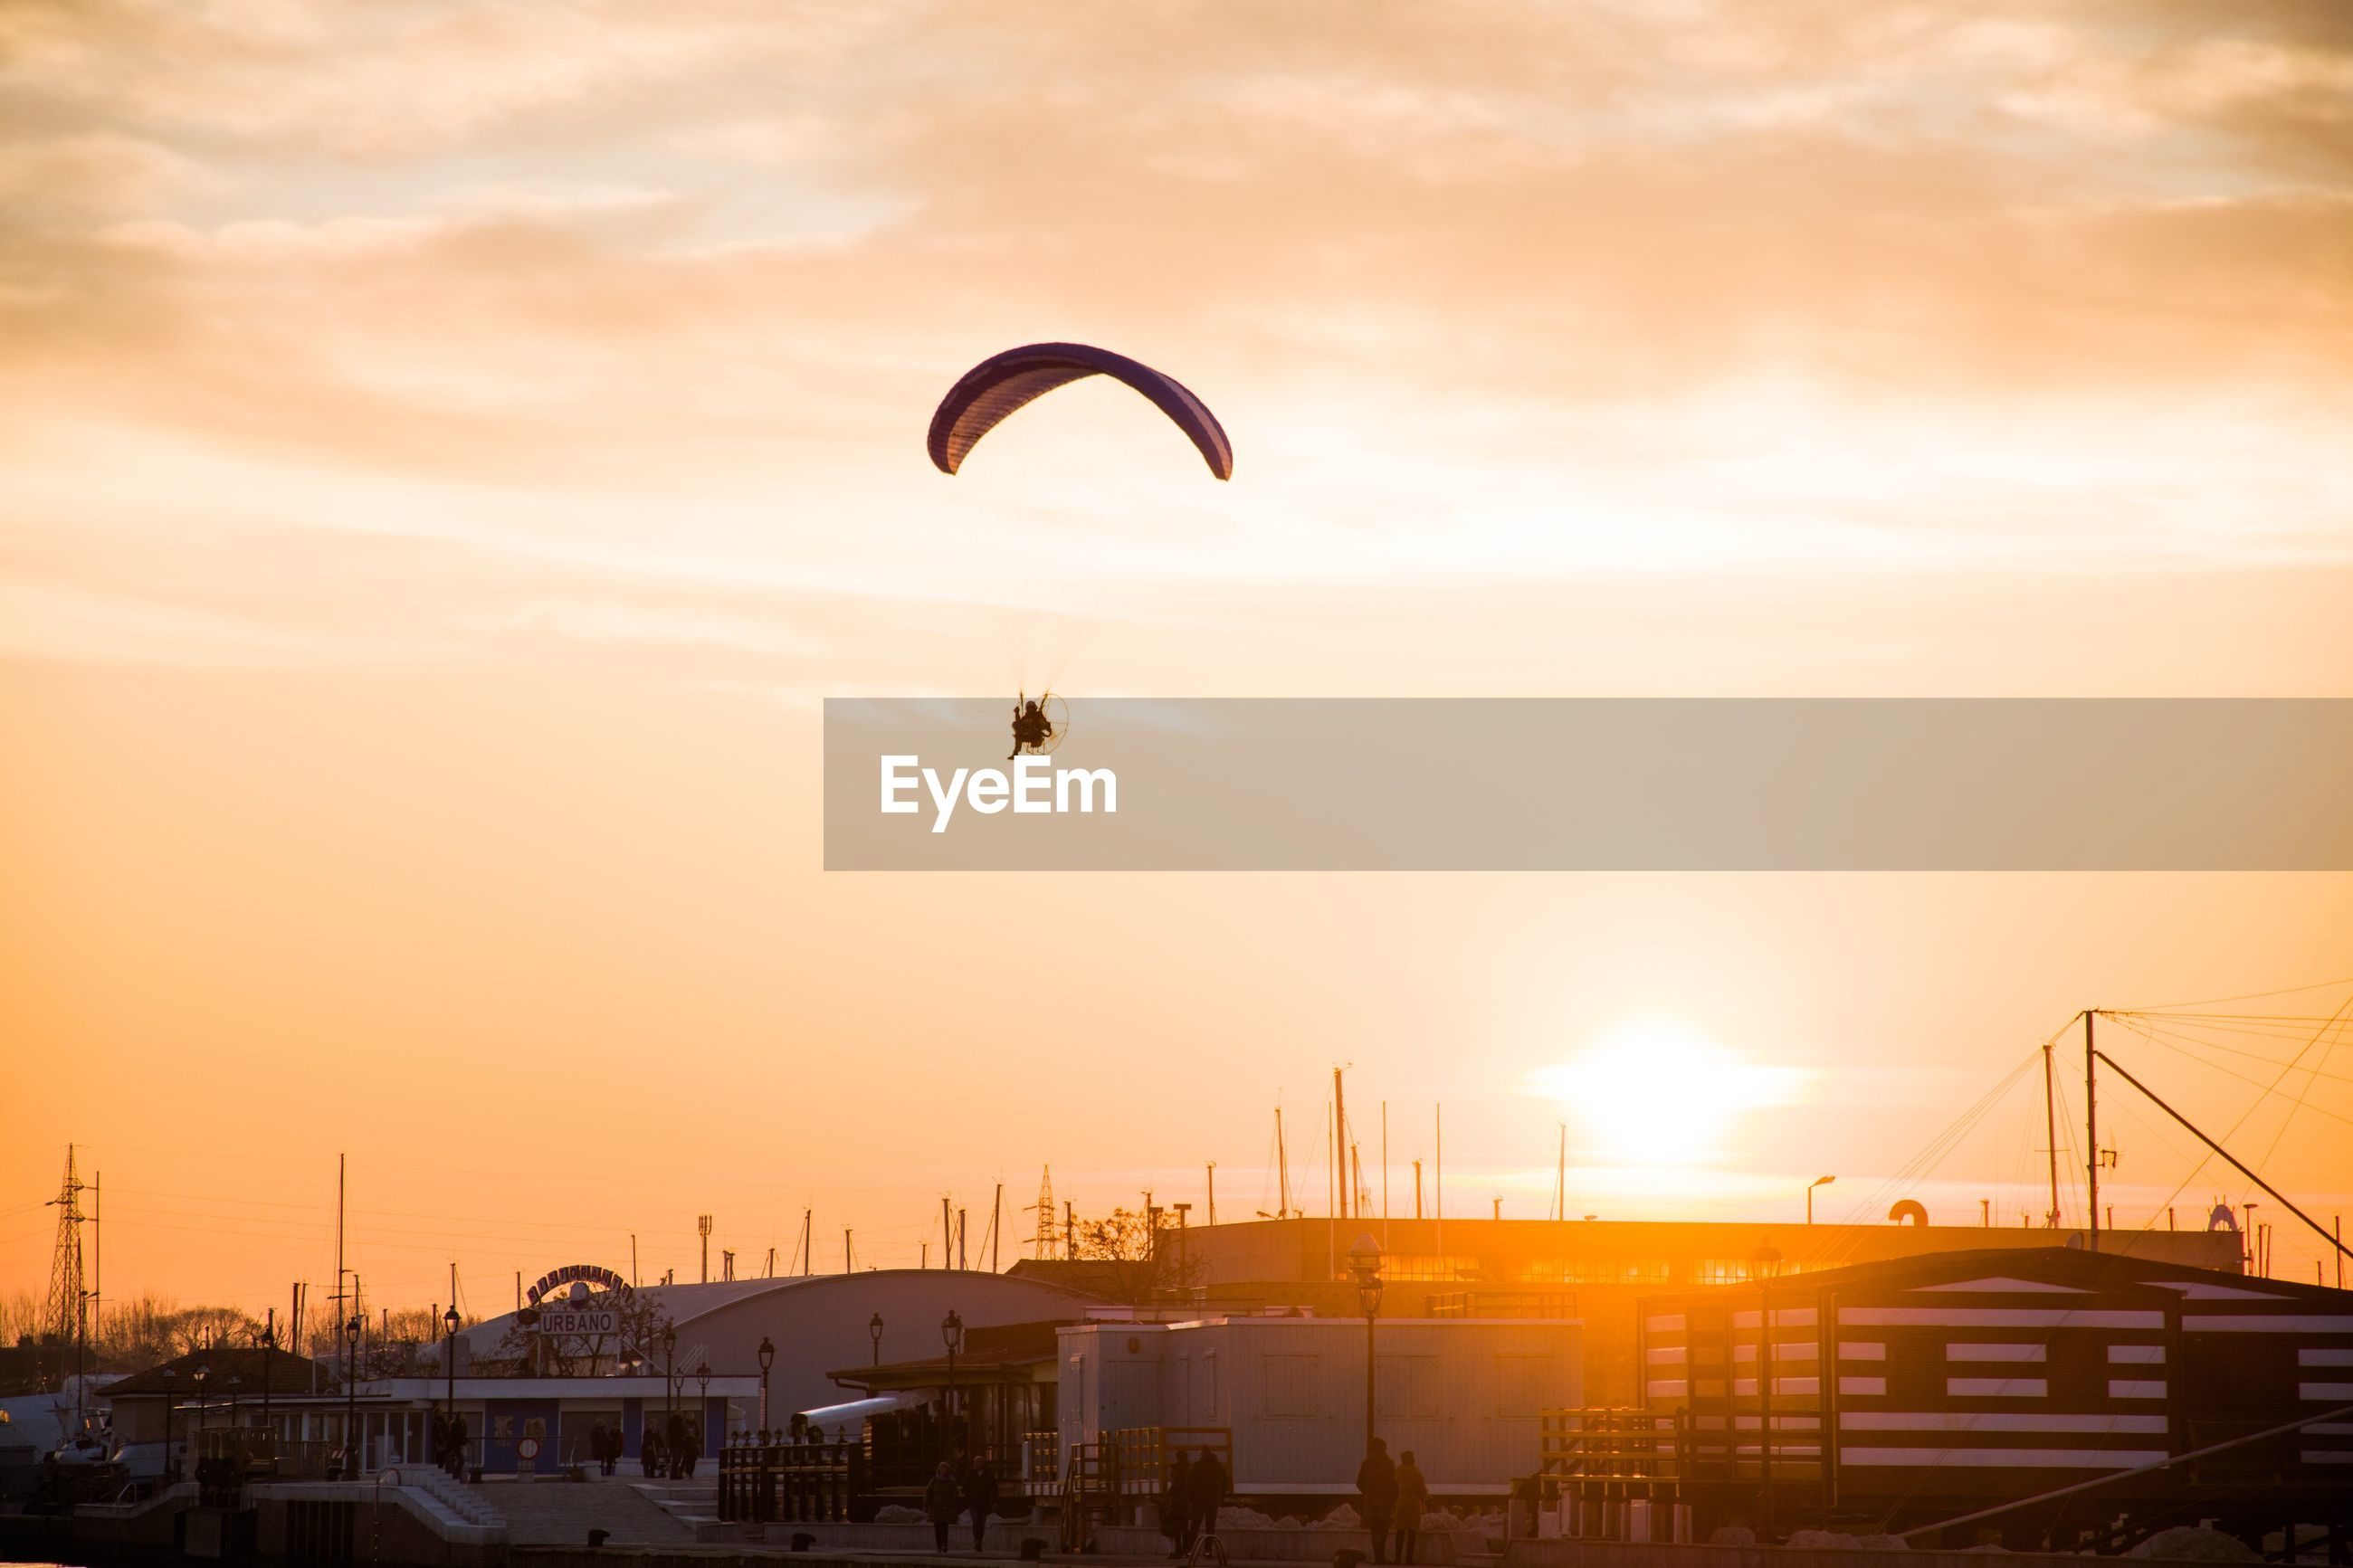 Person paragliding over city against sky during sunset